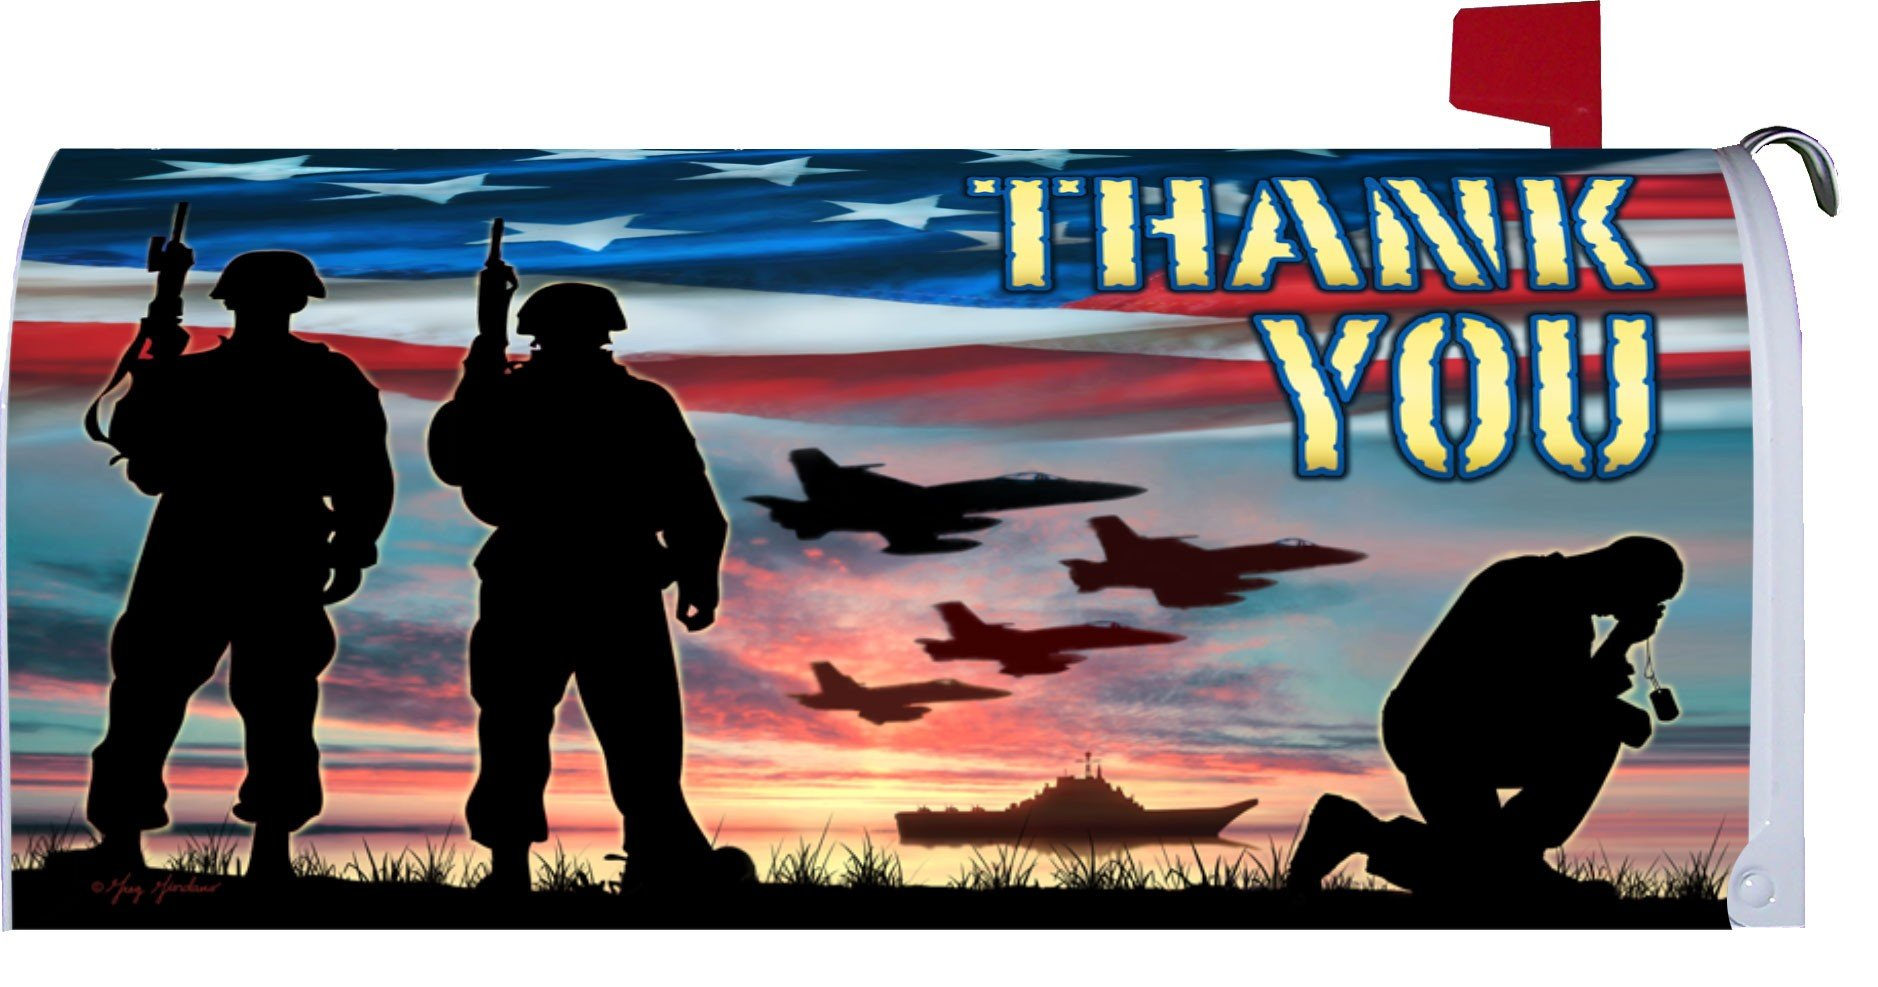 Thank You United States Military - Decorative Mailbox Makeover Cover Made in the USA